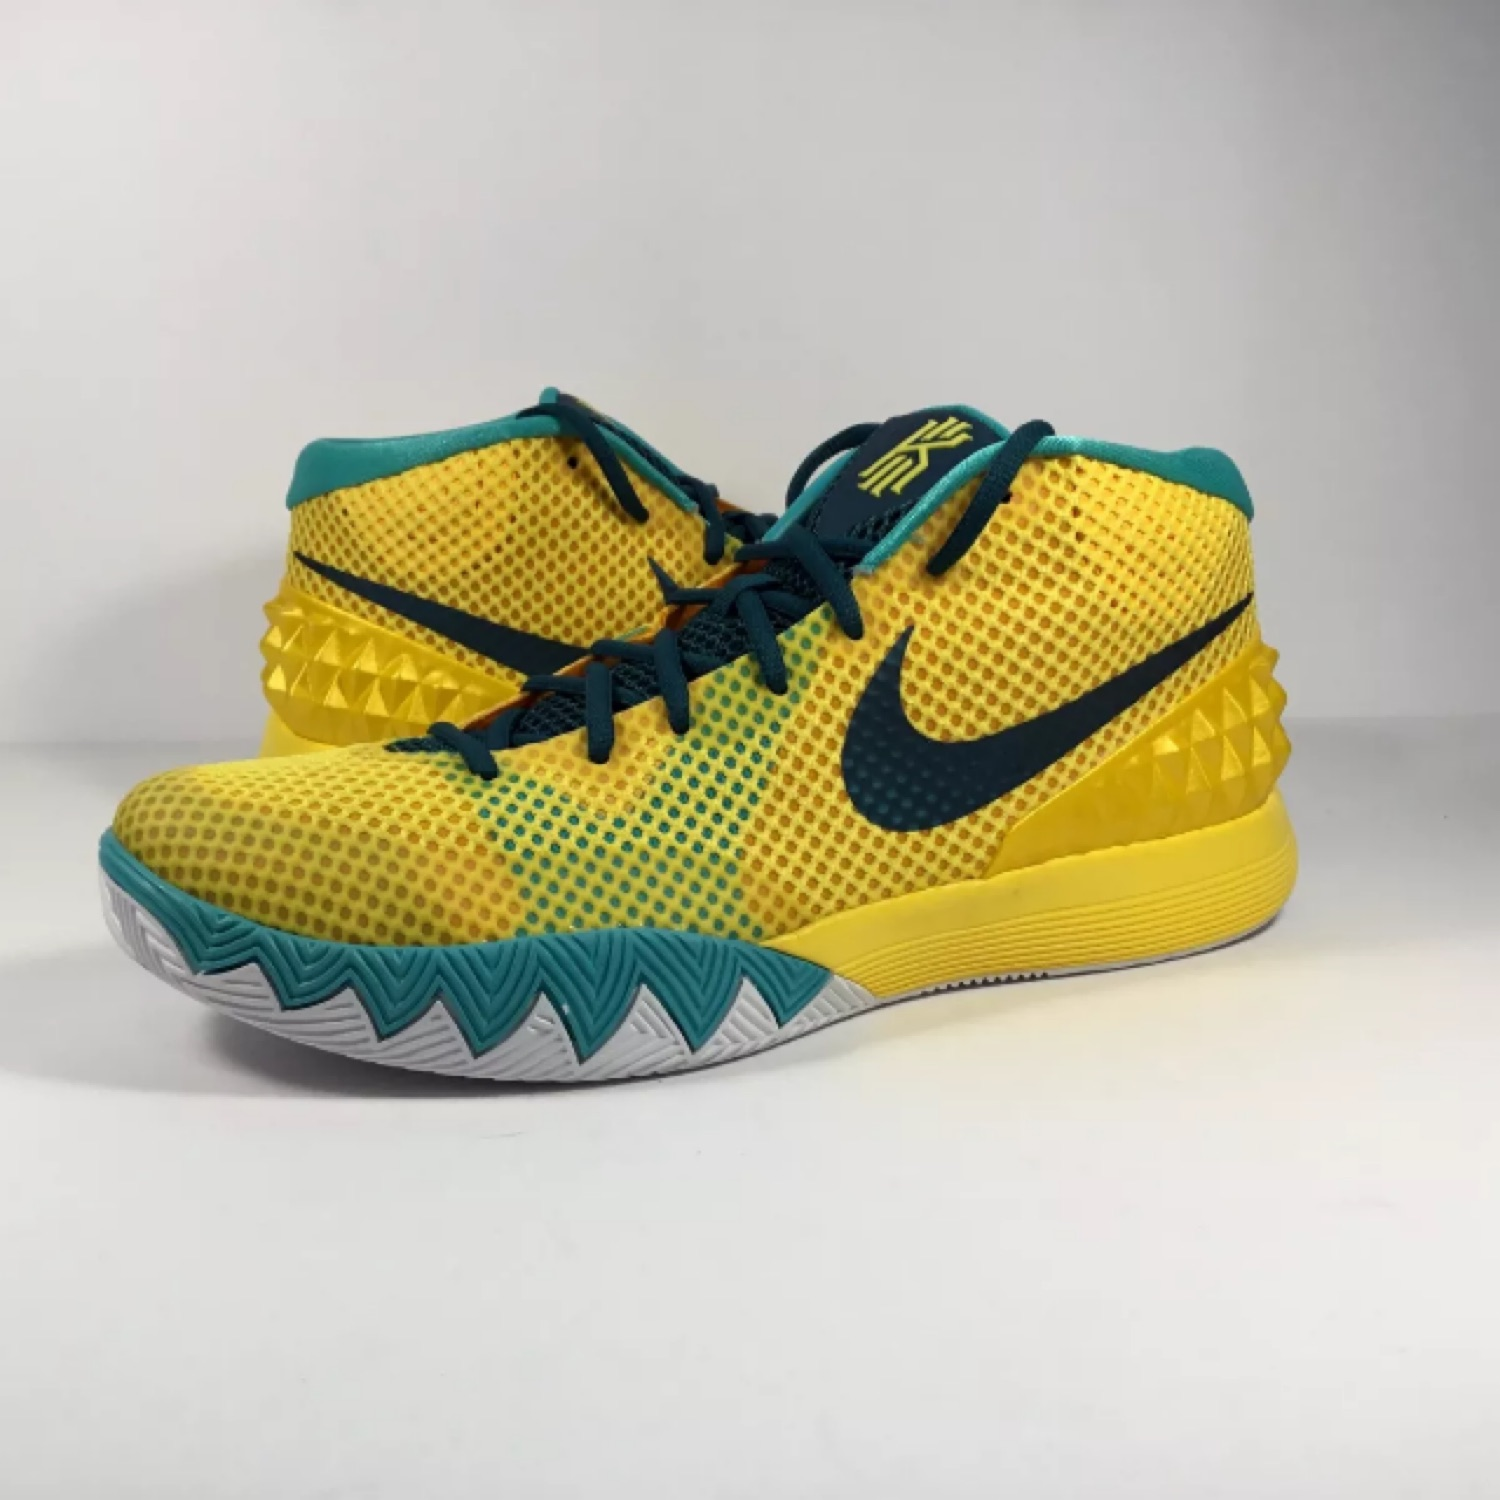 kyrie 1 yellow